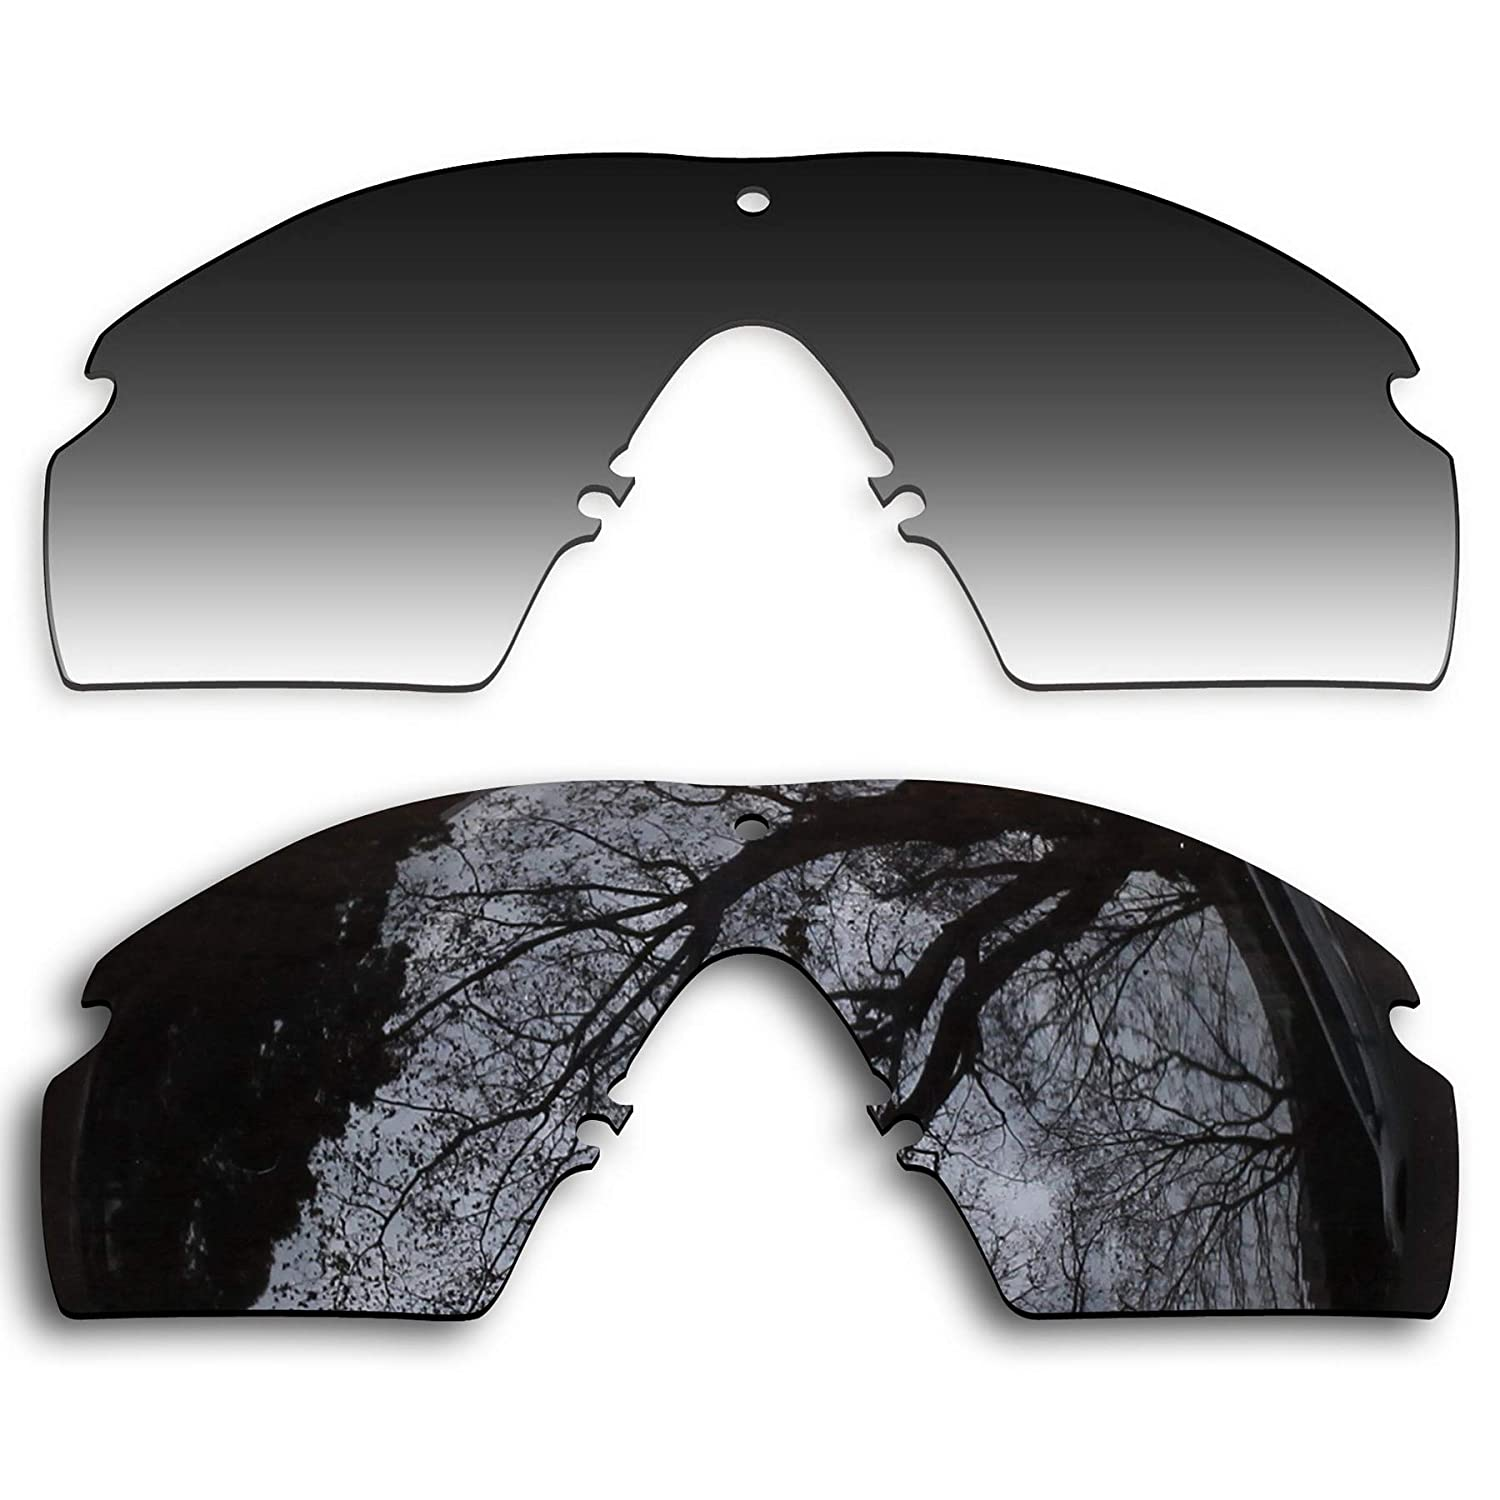 3dbfee9548c Amazon.com  2 Pair Polarized Lens Replacement for Oakley Si Ballistic M  Frame 2.0 Black Grey Gradient  Clothing